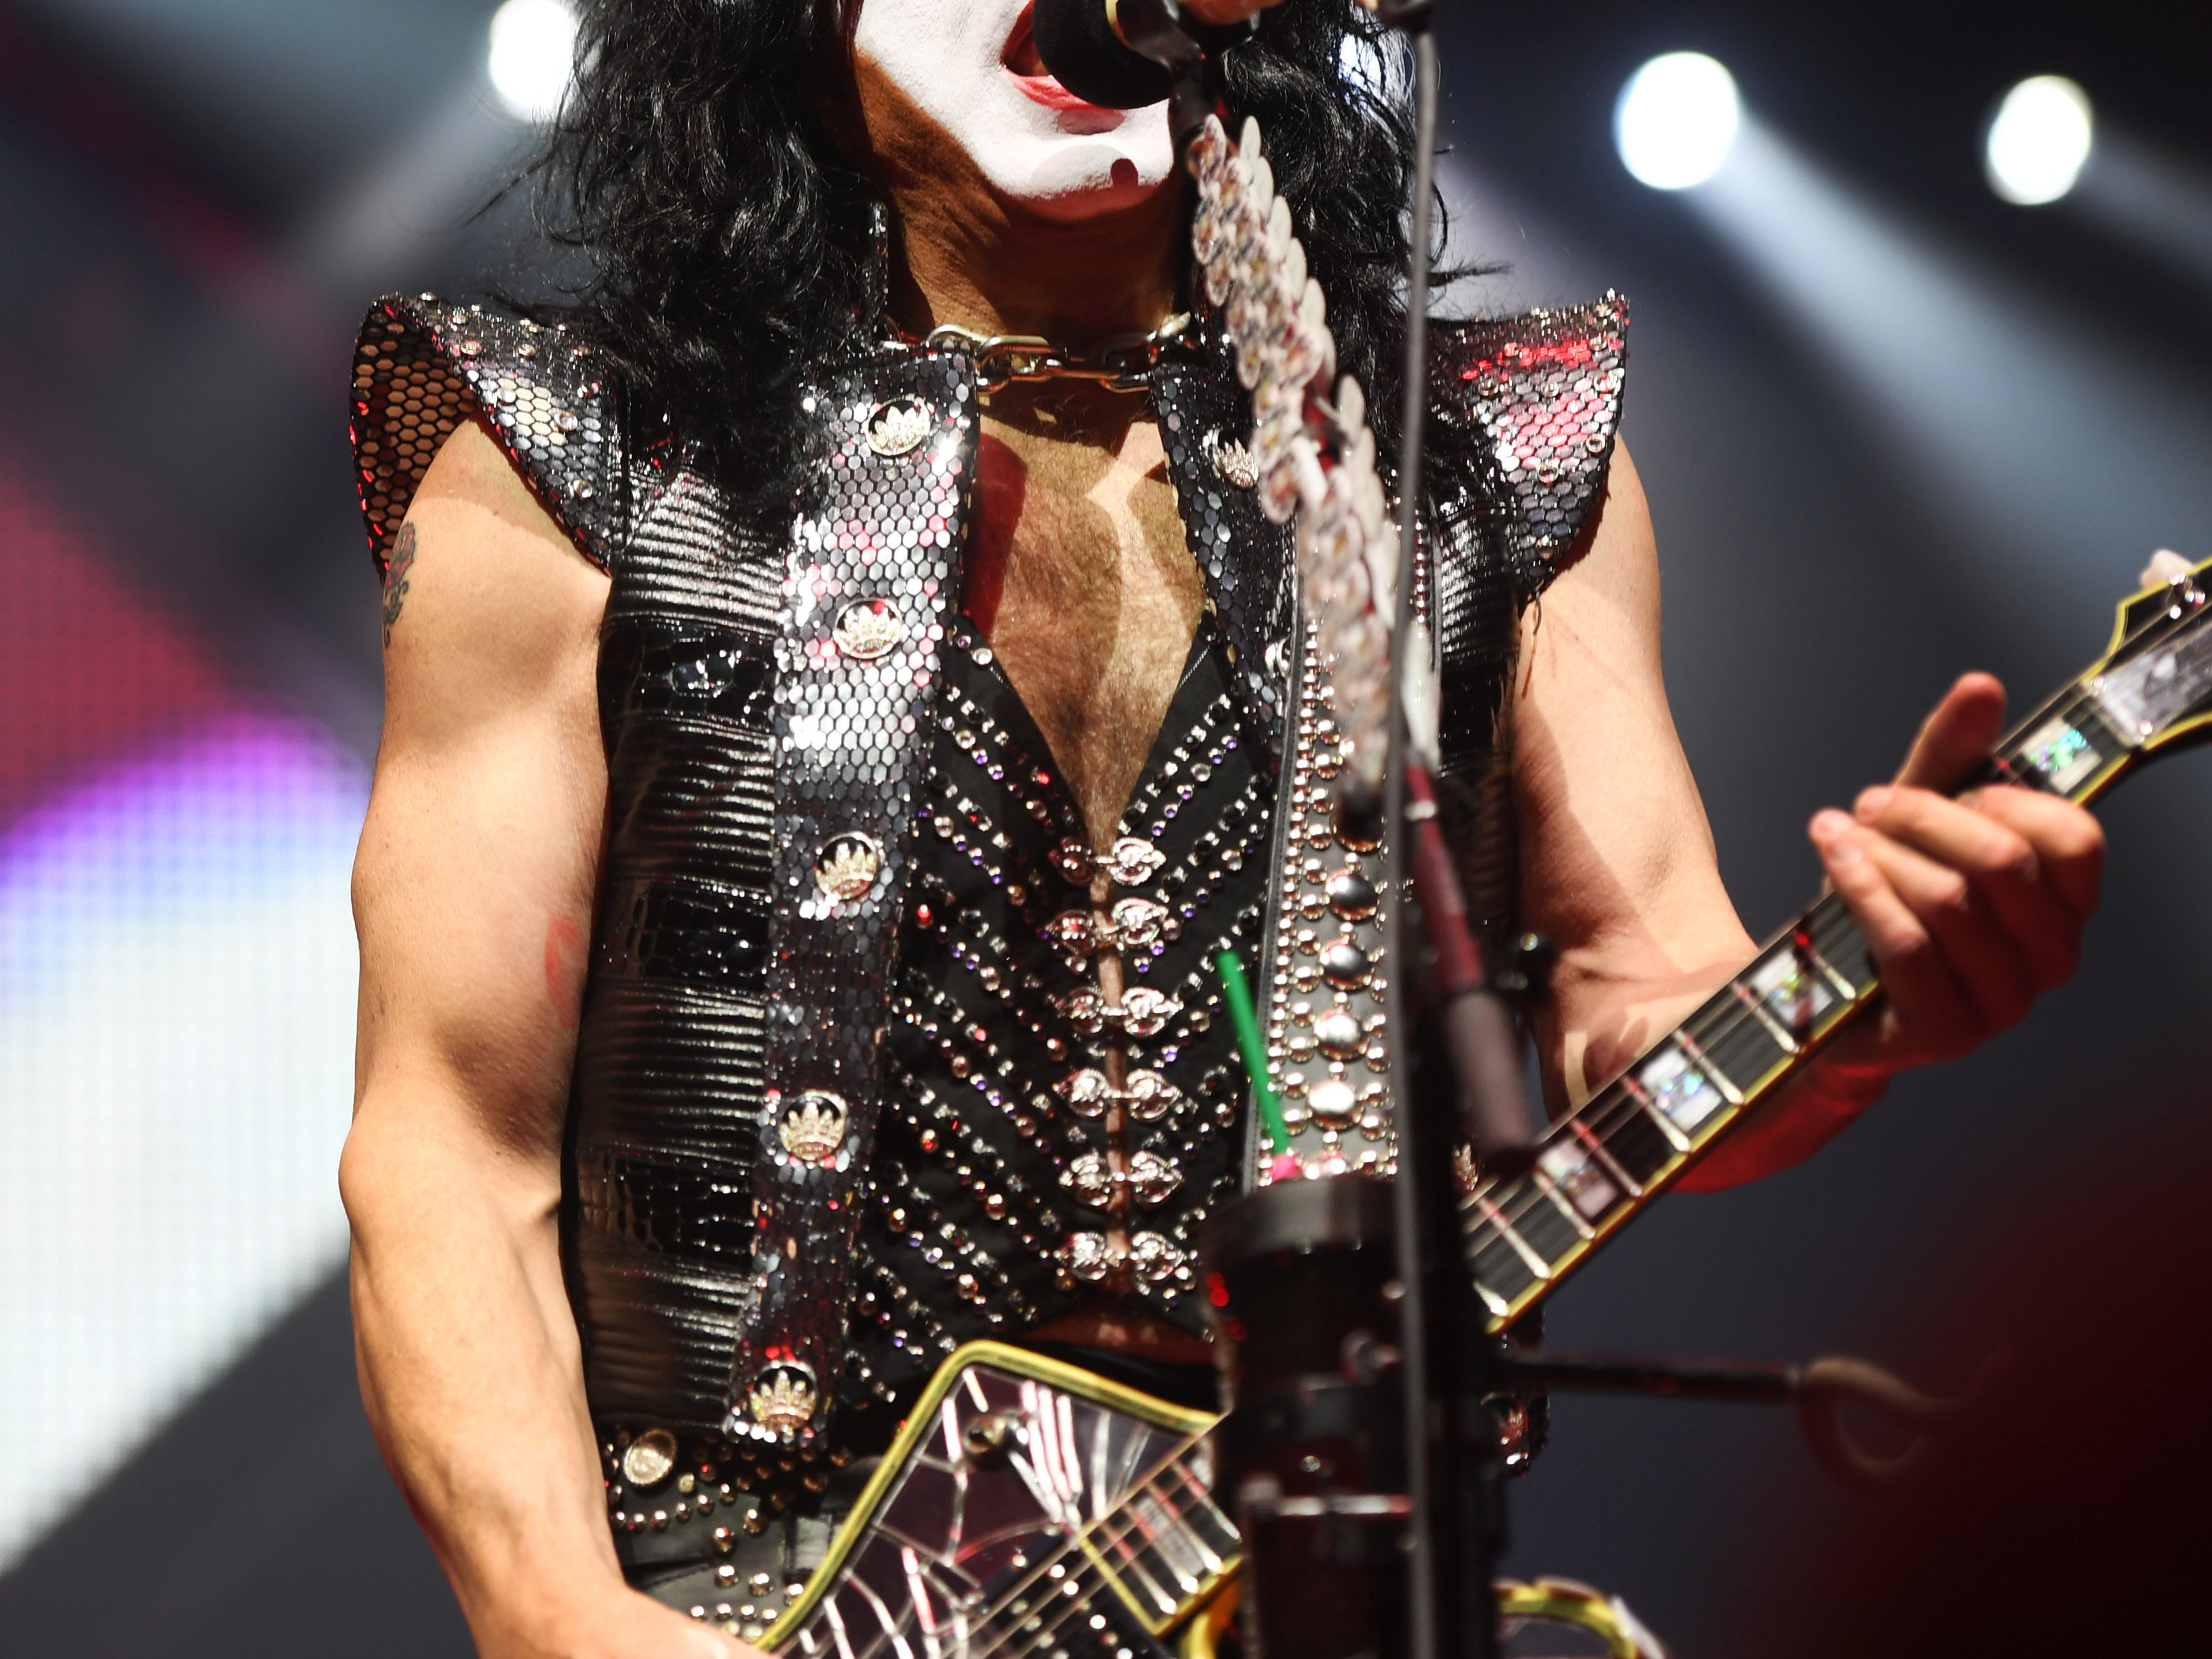 KISS lead vocalist Paul Stanley performs during the KISS End of the Road World Tour Wednesday, March 6, at the Denny Sanford Premier Center in Sioux Falls. The line up included lead vocalist Paul Stanley, bassist Gene Simmons, guitarist Tommy Thayer and drummer Eric Singer.